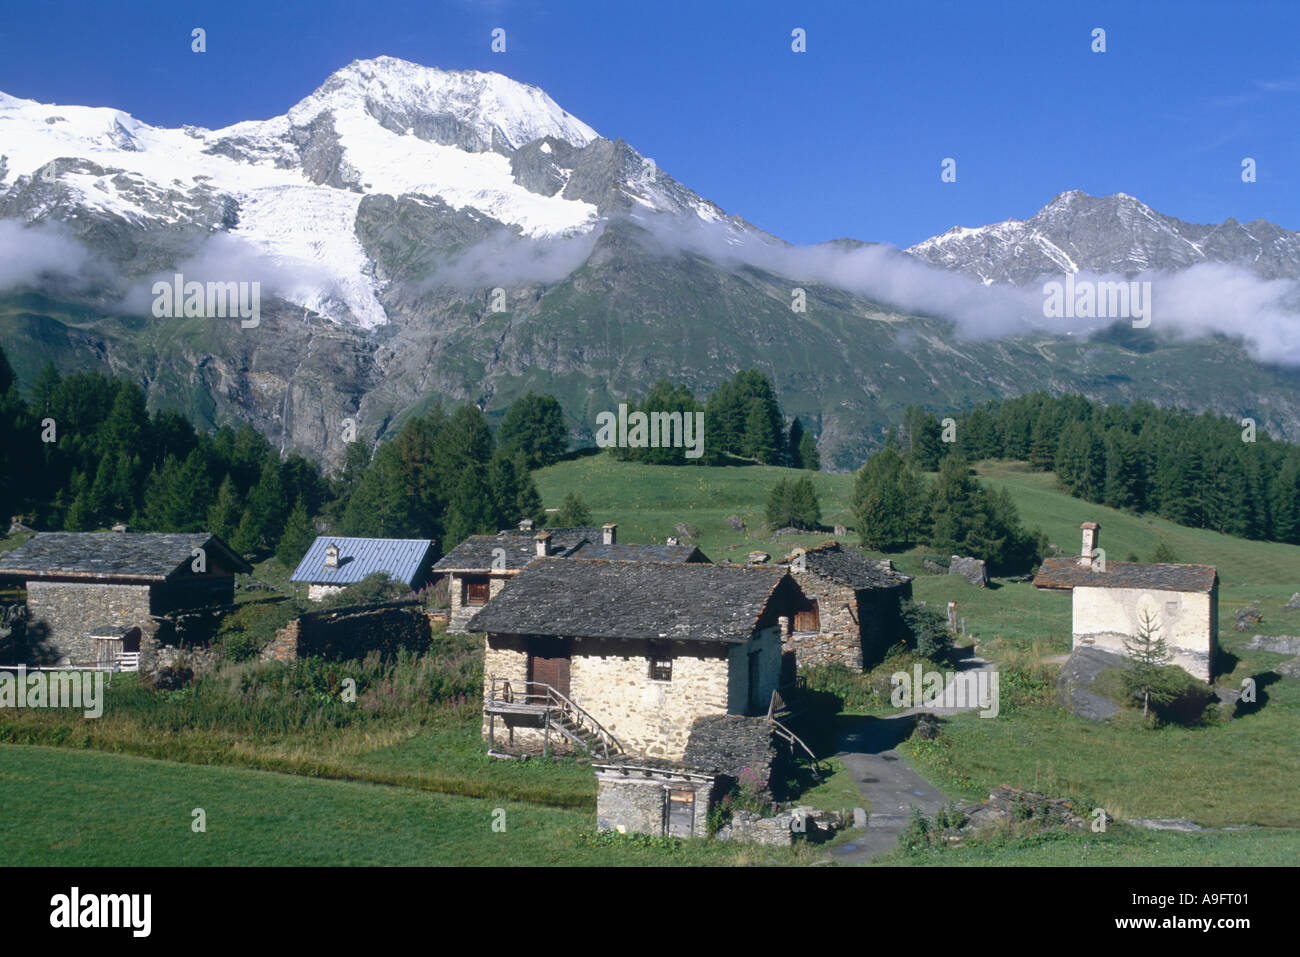 village Le Monal (1874 ft) in the village Tarentaise, with glaciers of Mont Pourri in background, France, Rhne-Alpes. - Stock Image